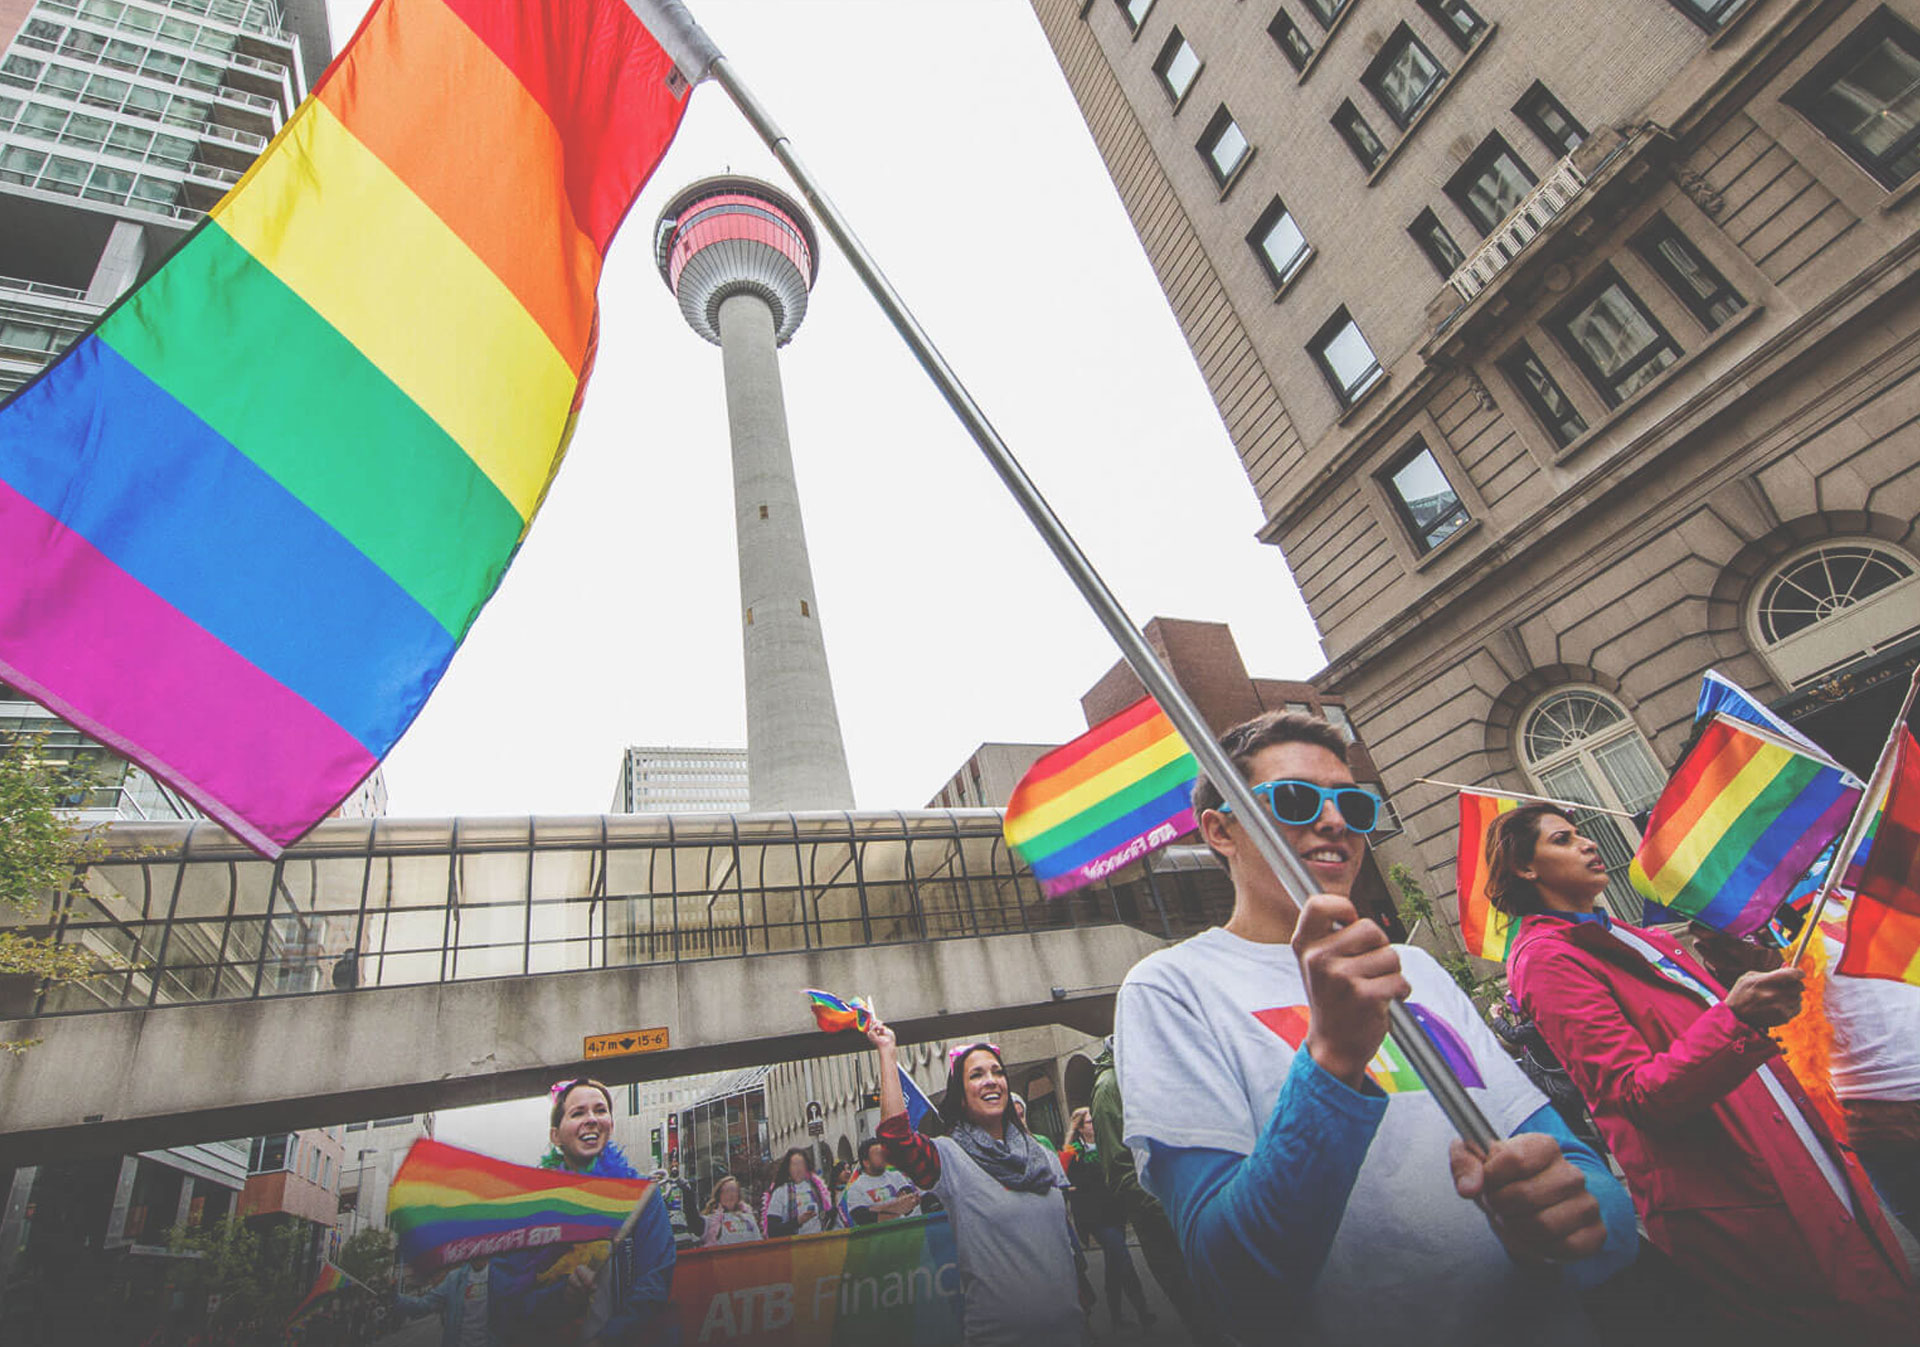 Celebrate LGBT equality and diversity during Calgary Pride. (Photo credit: Neil Zeller)